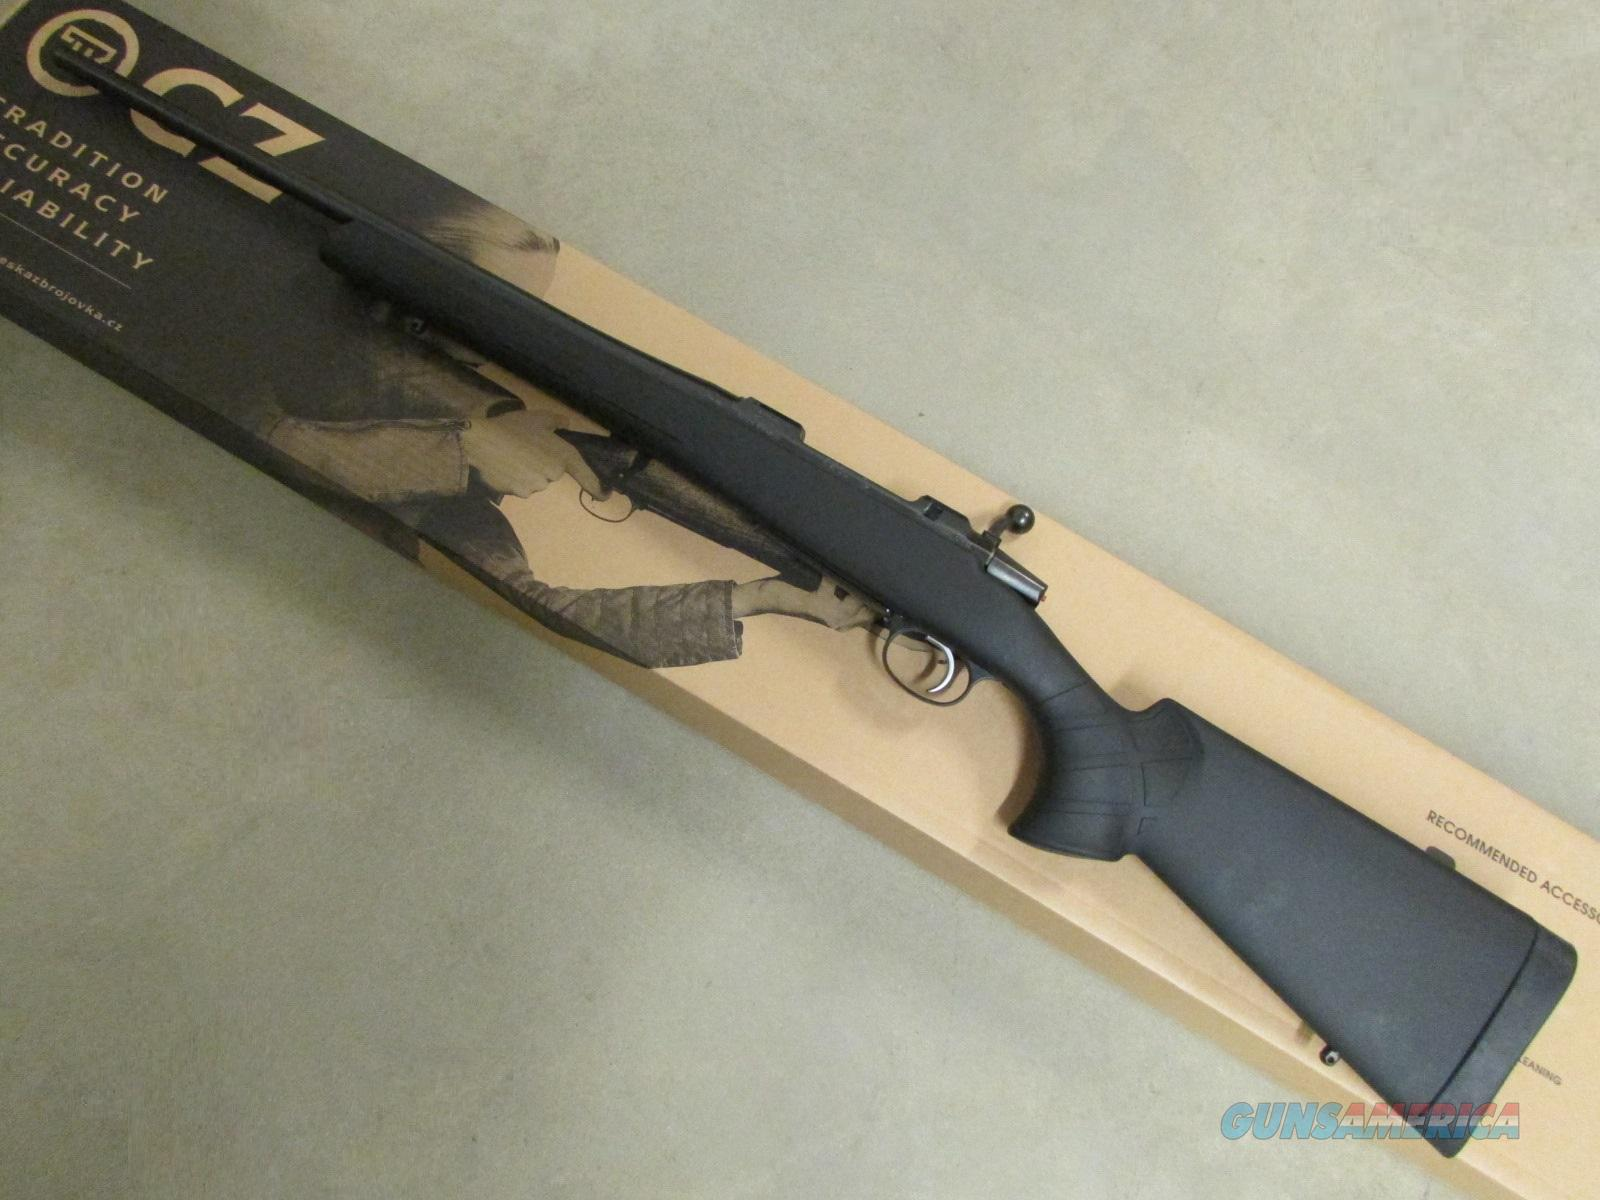 Get Ready for Whitetail - The CZ 557 (REVIEW) - GunsAmerica Digest